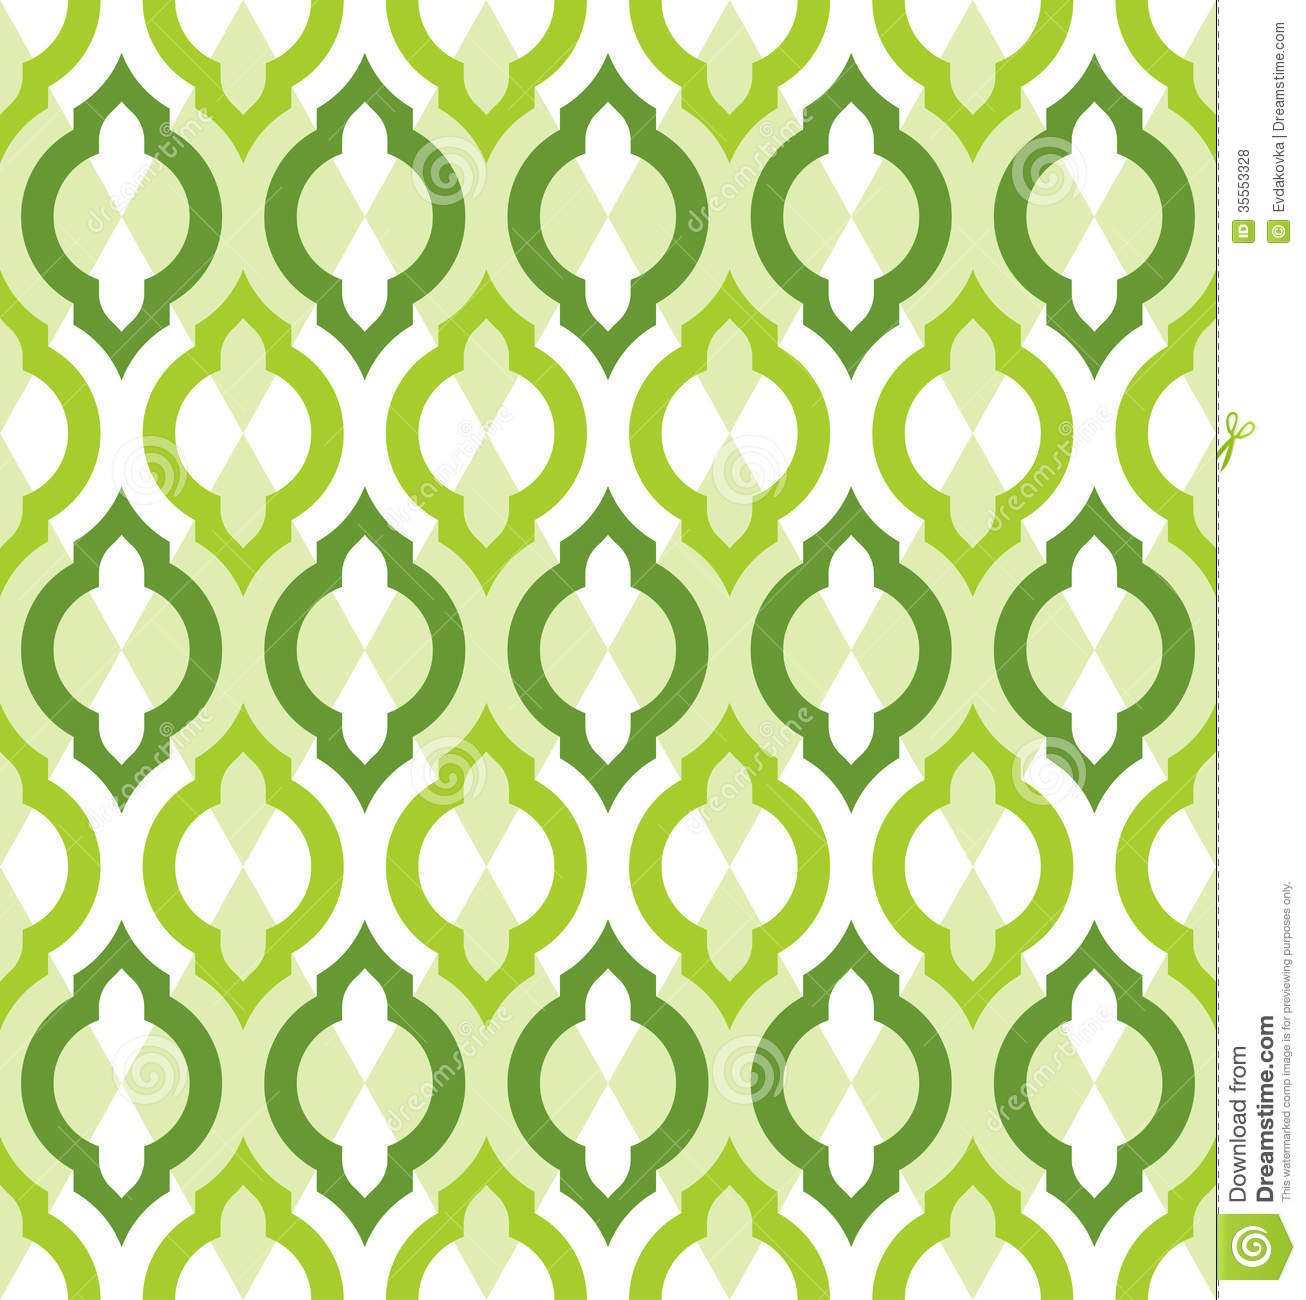 Moroccan patterns clipart vector download Moroccan desktop clipart - ClipartFox vector download